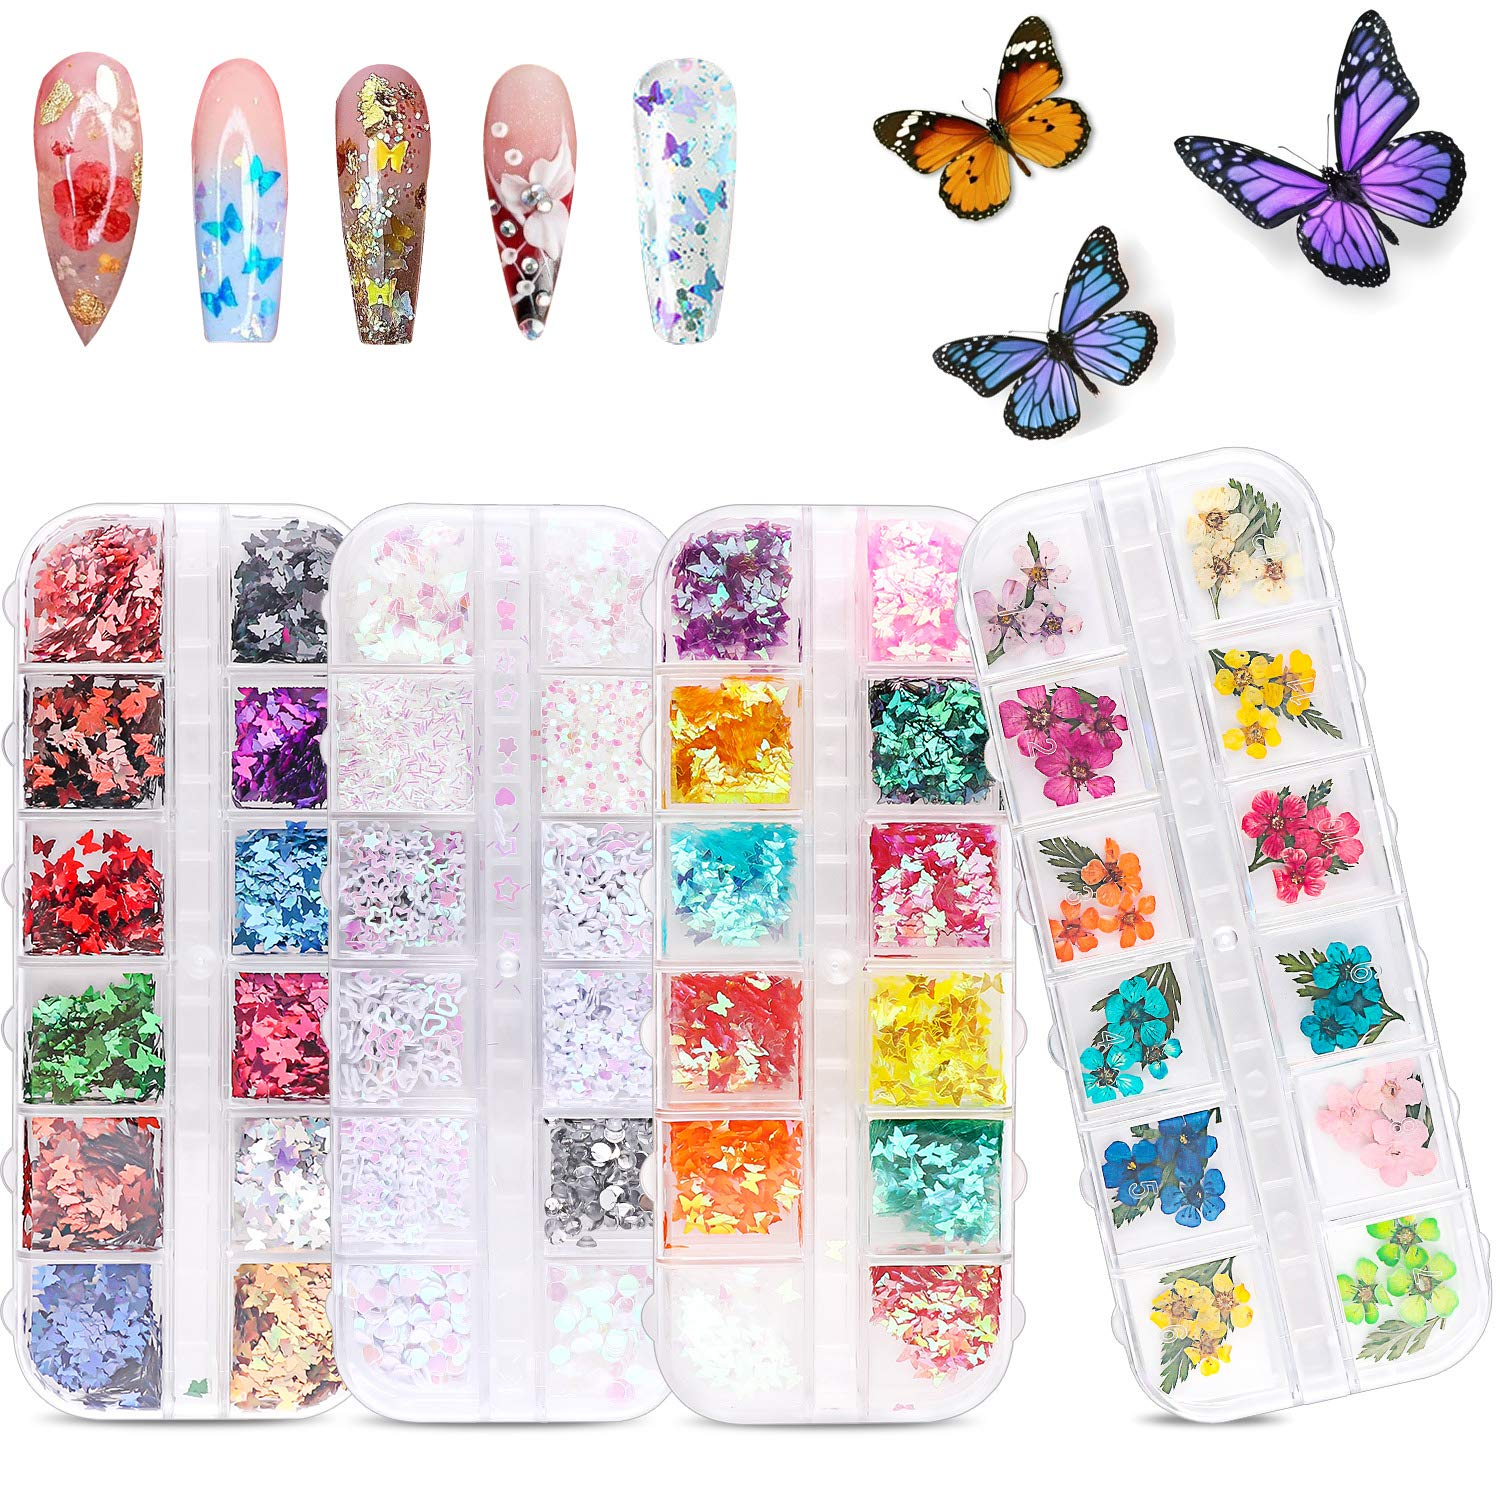 48 Colors Dried Flowers Nail Art Butterfly Glitter Flake 3D Holographic, Tufusiur Dry Flower Nails Sequins Acrylic Supplies Face Body Gifts for Decoration Accessories & DIY Crafting: Beauty